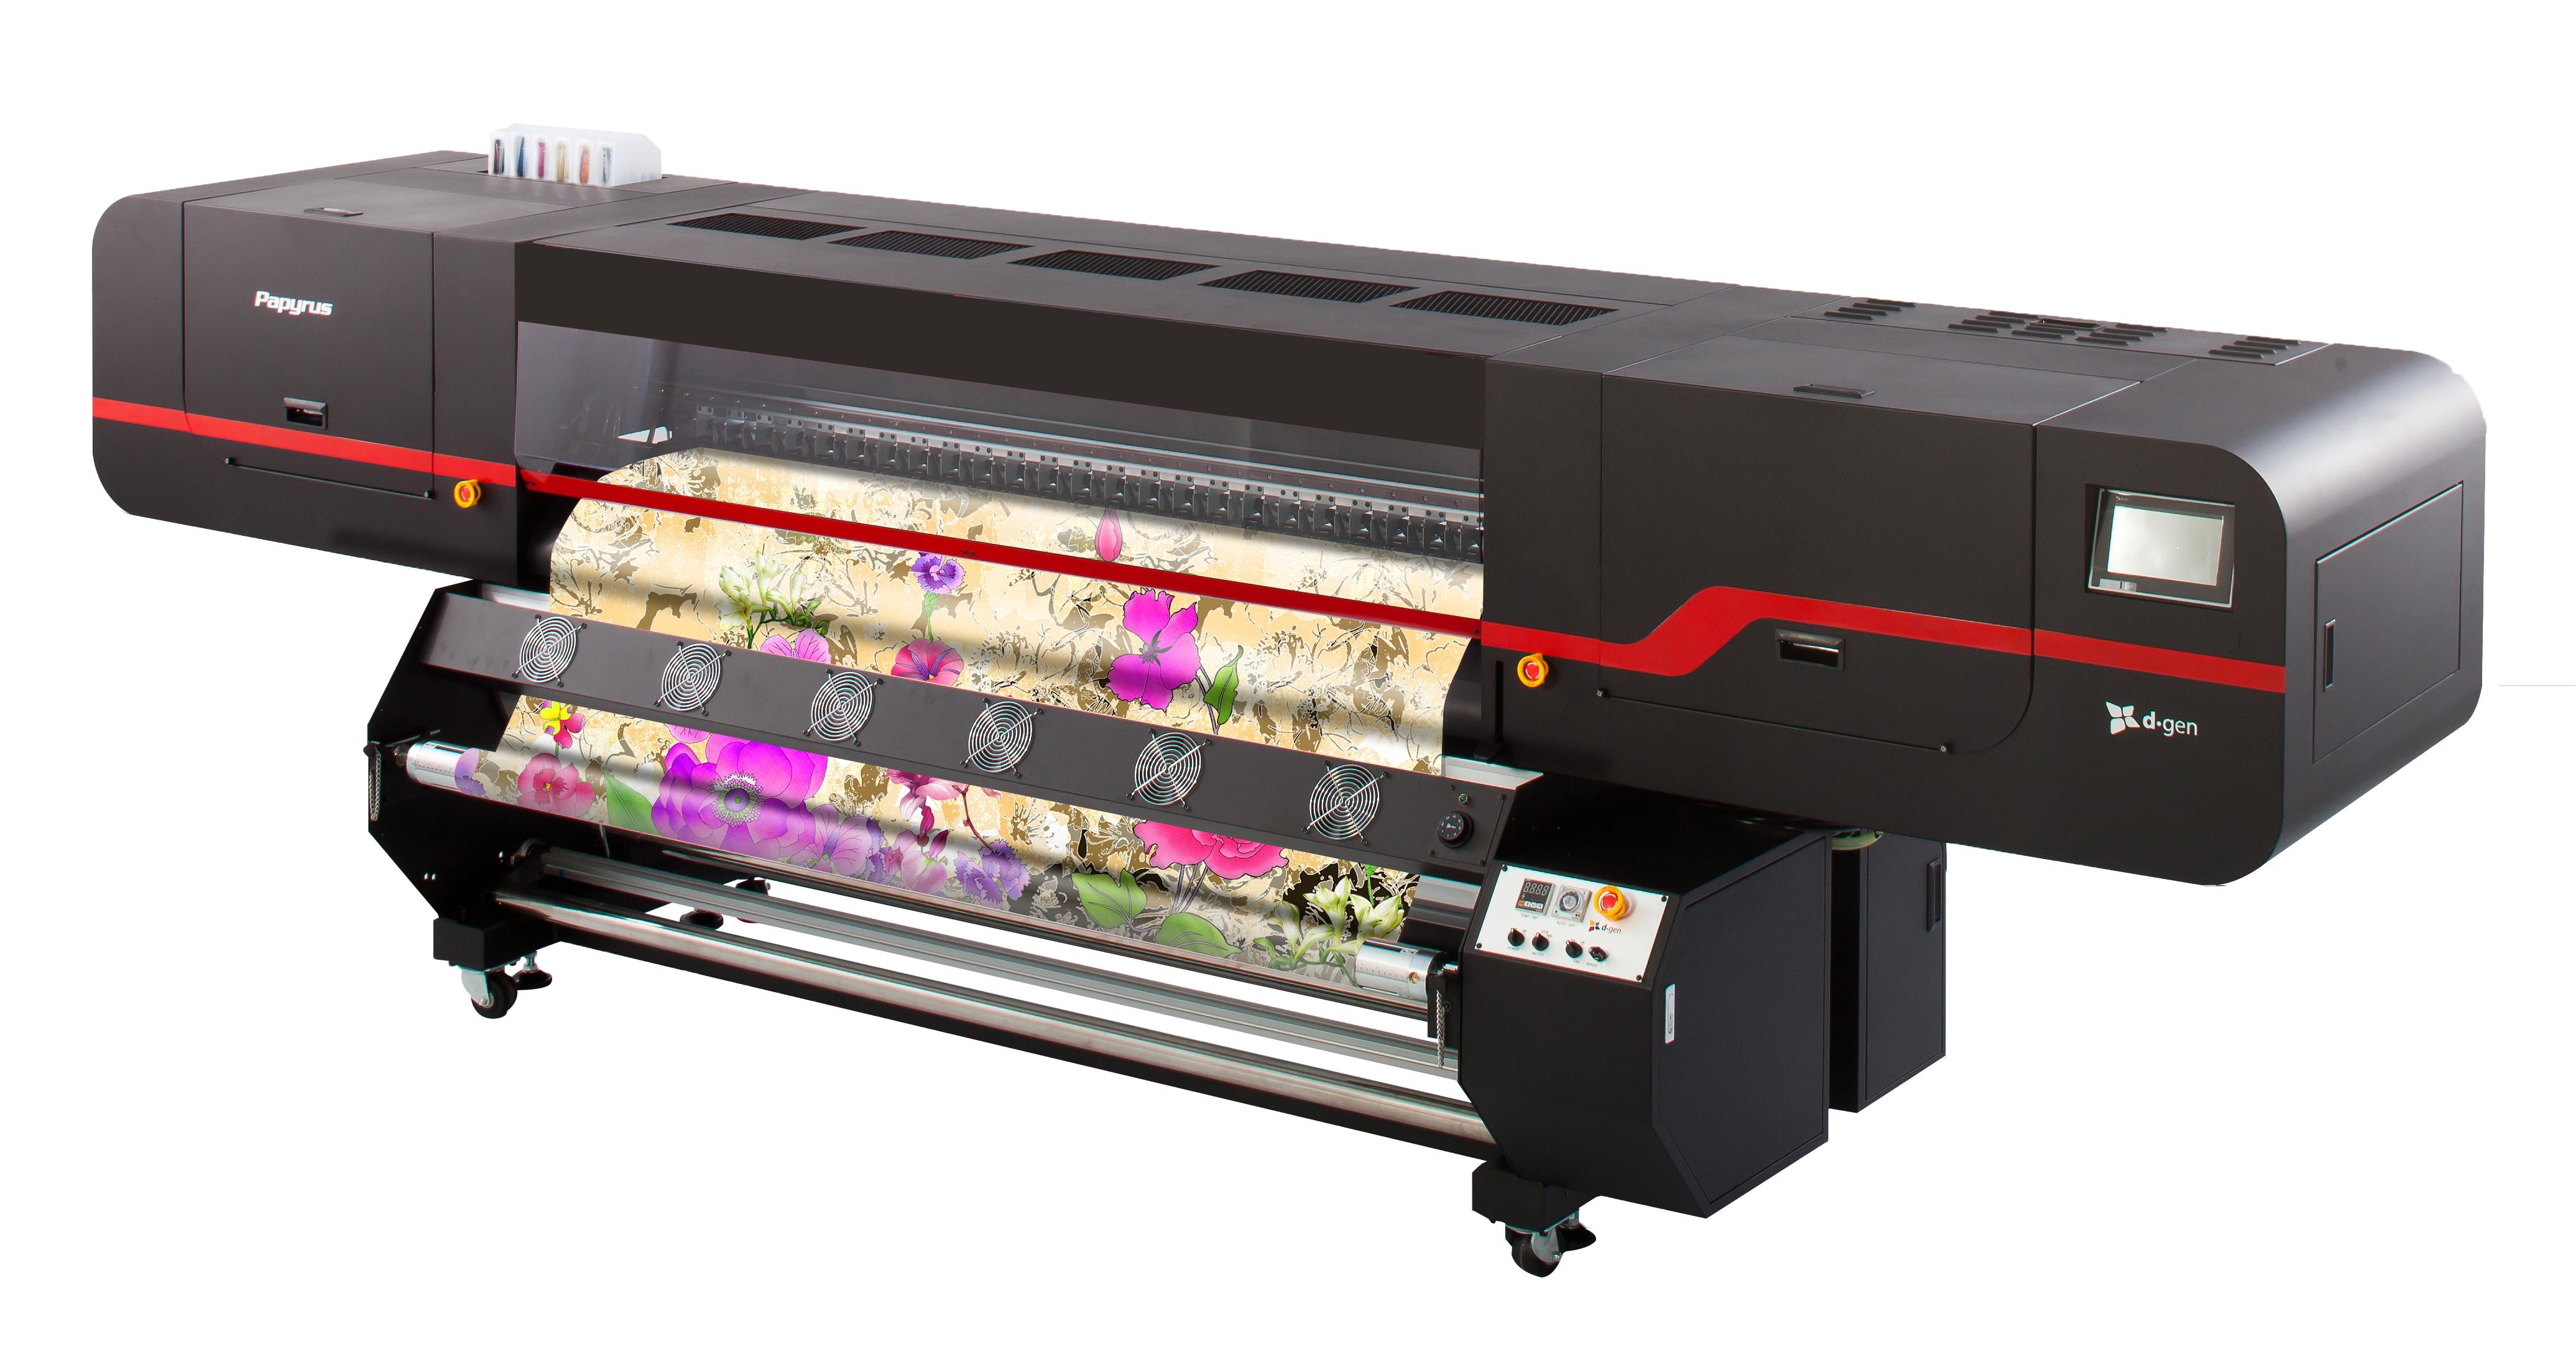 Papyrus Arete- The High Speed, High Definition Printer